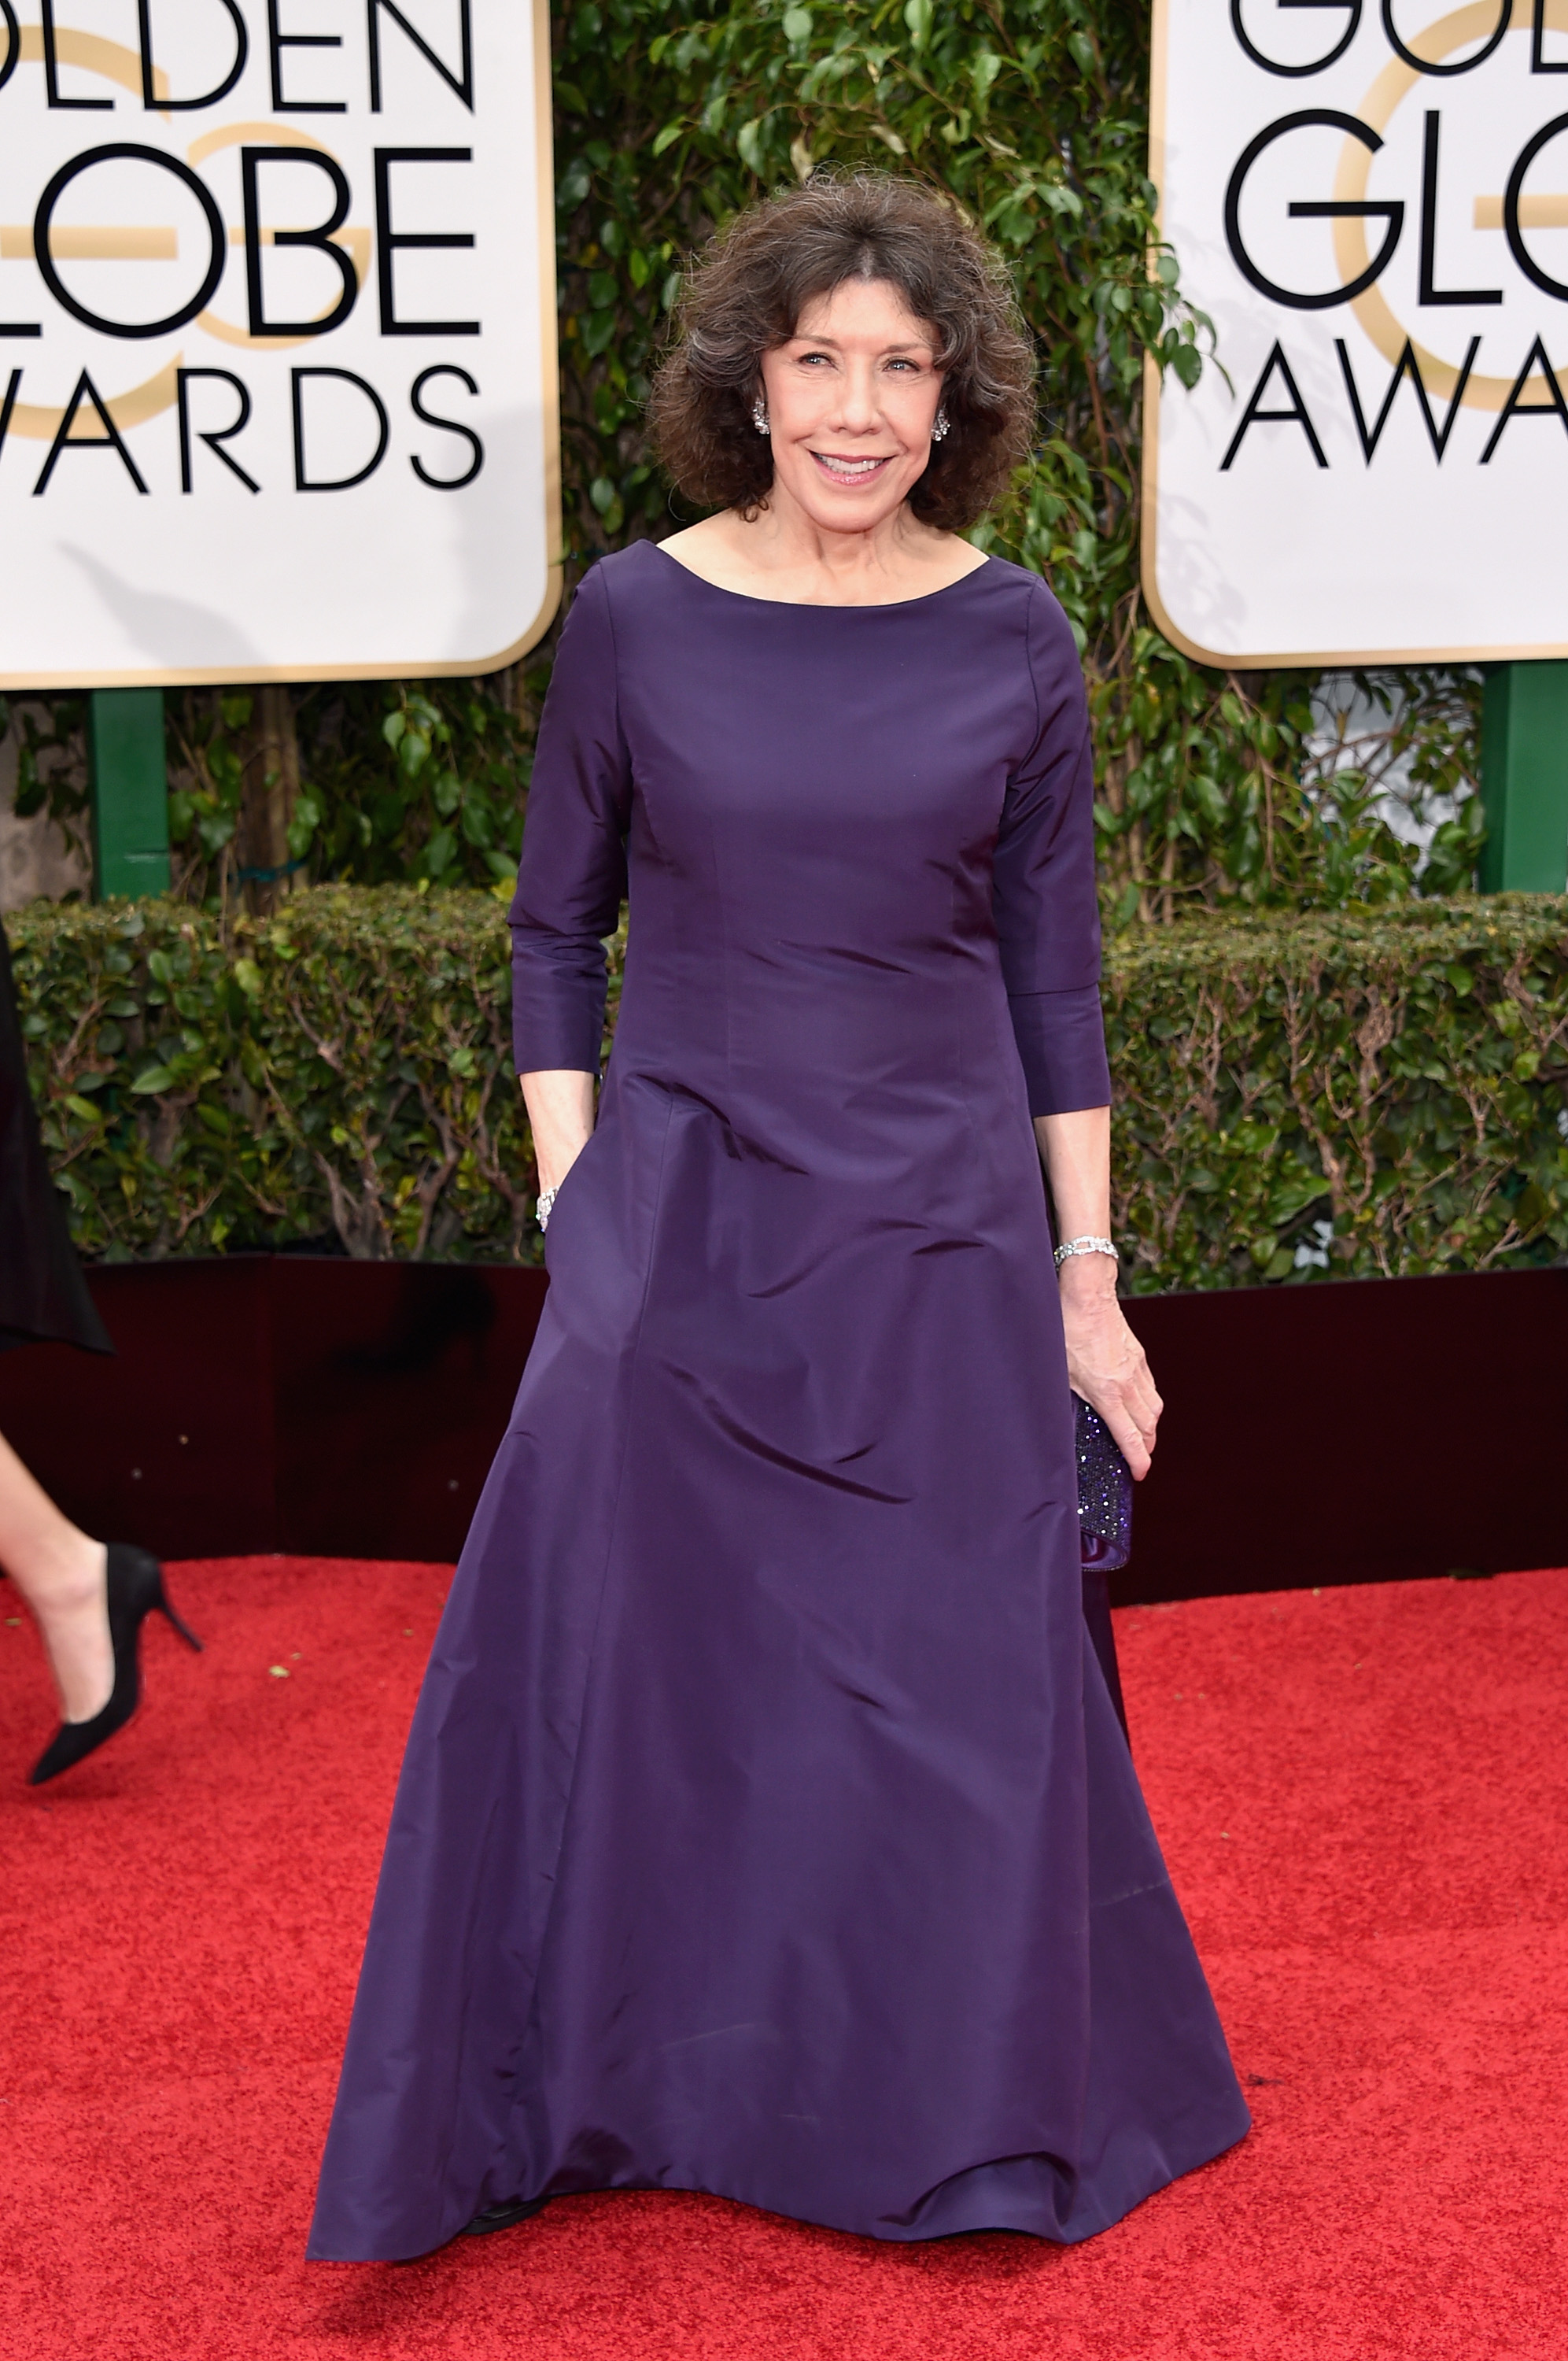 Lily Tomlin arrives to the 73rd Annual Golden Globe Awards on Jan. 10, 2016 in Beverly Hills.